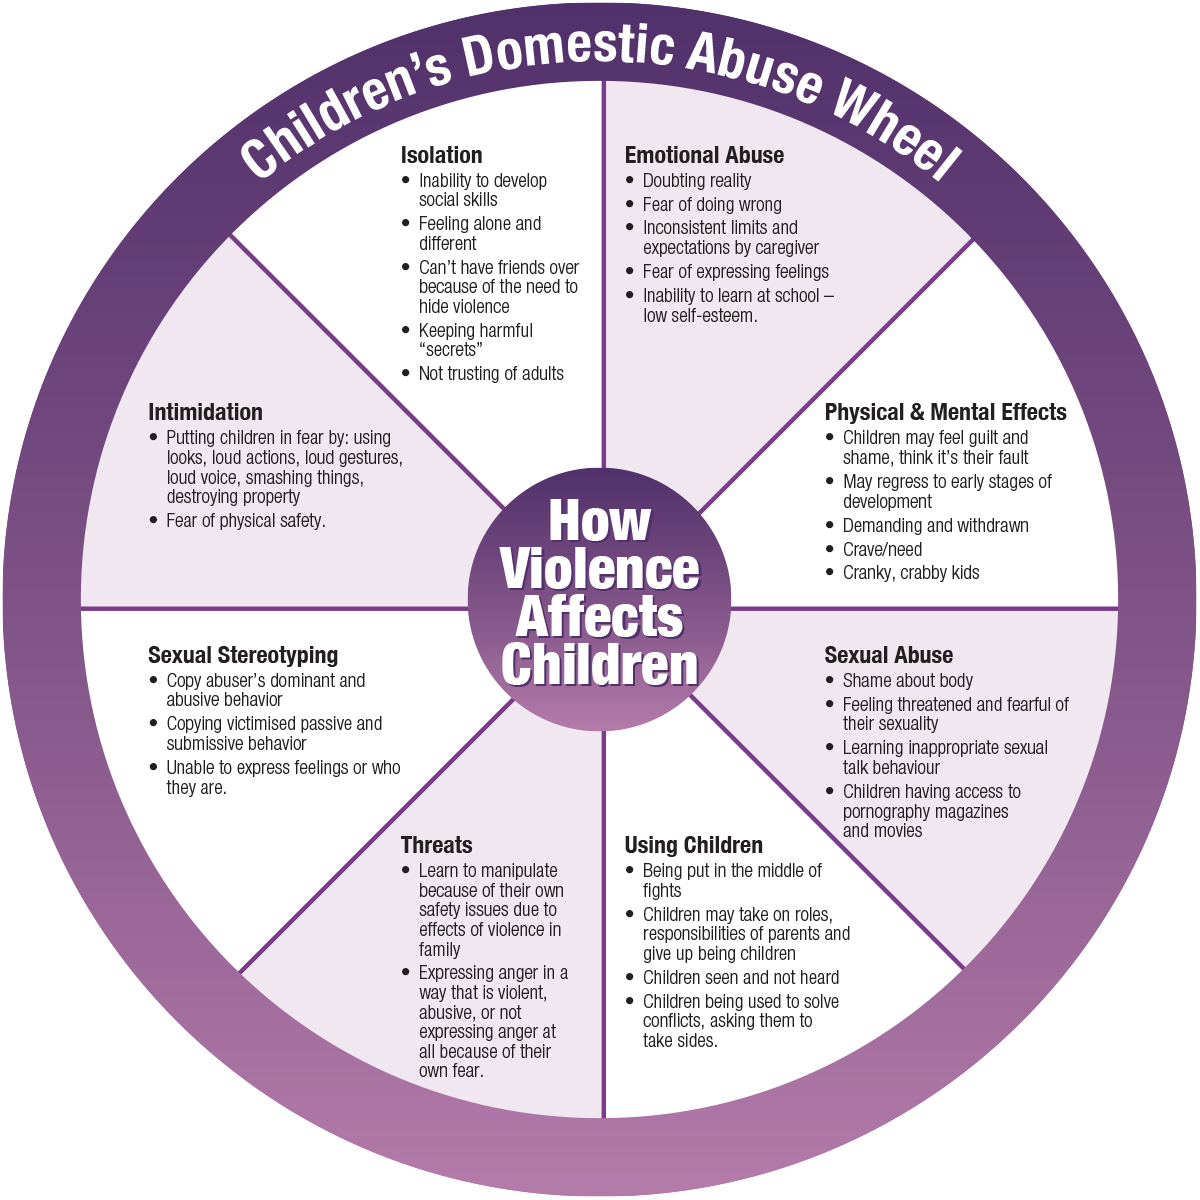 Children's domestic abuse wheel